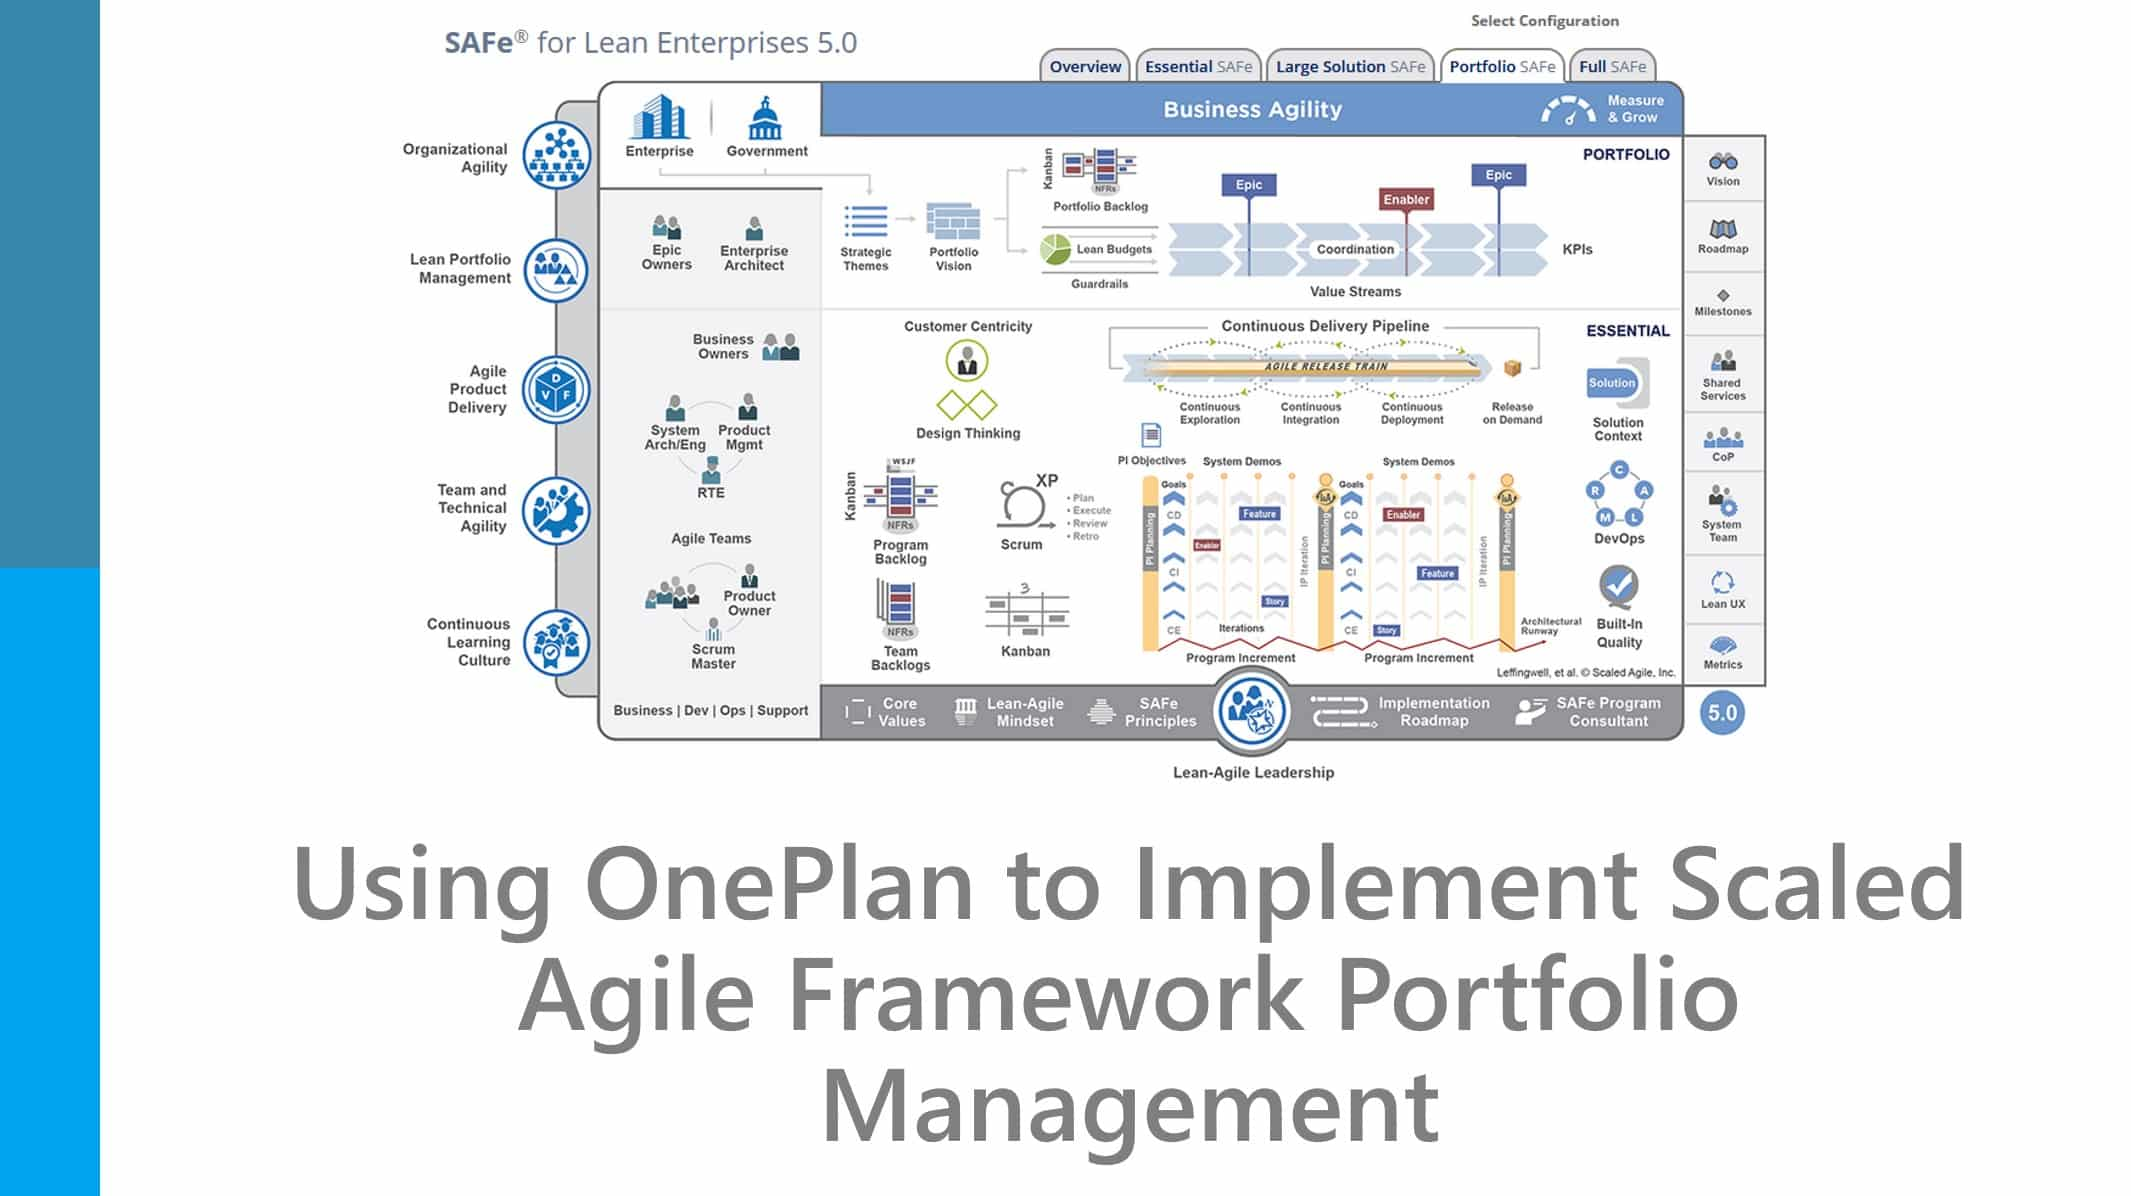 Using OnePlan to Implement Scaled Agile Framework